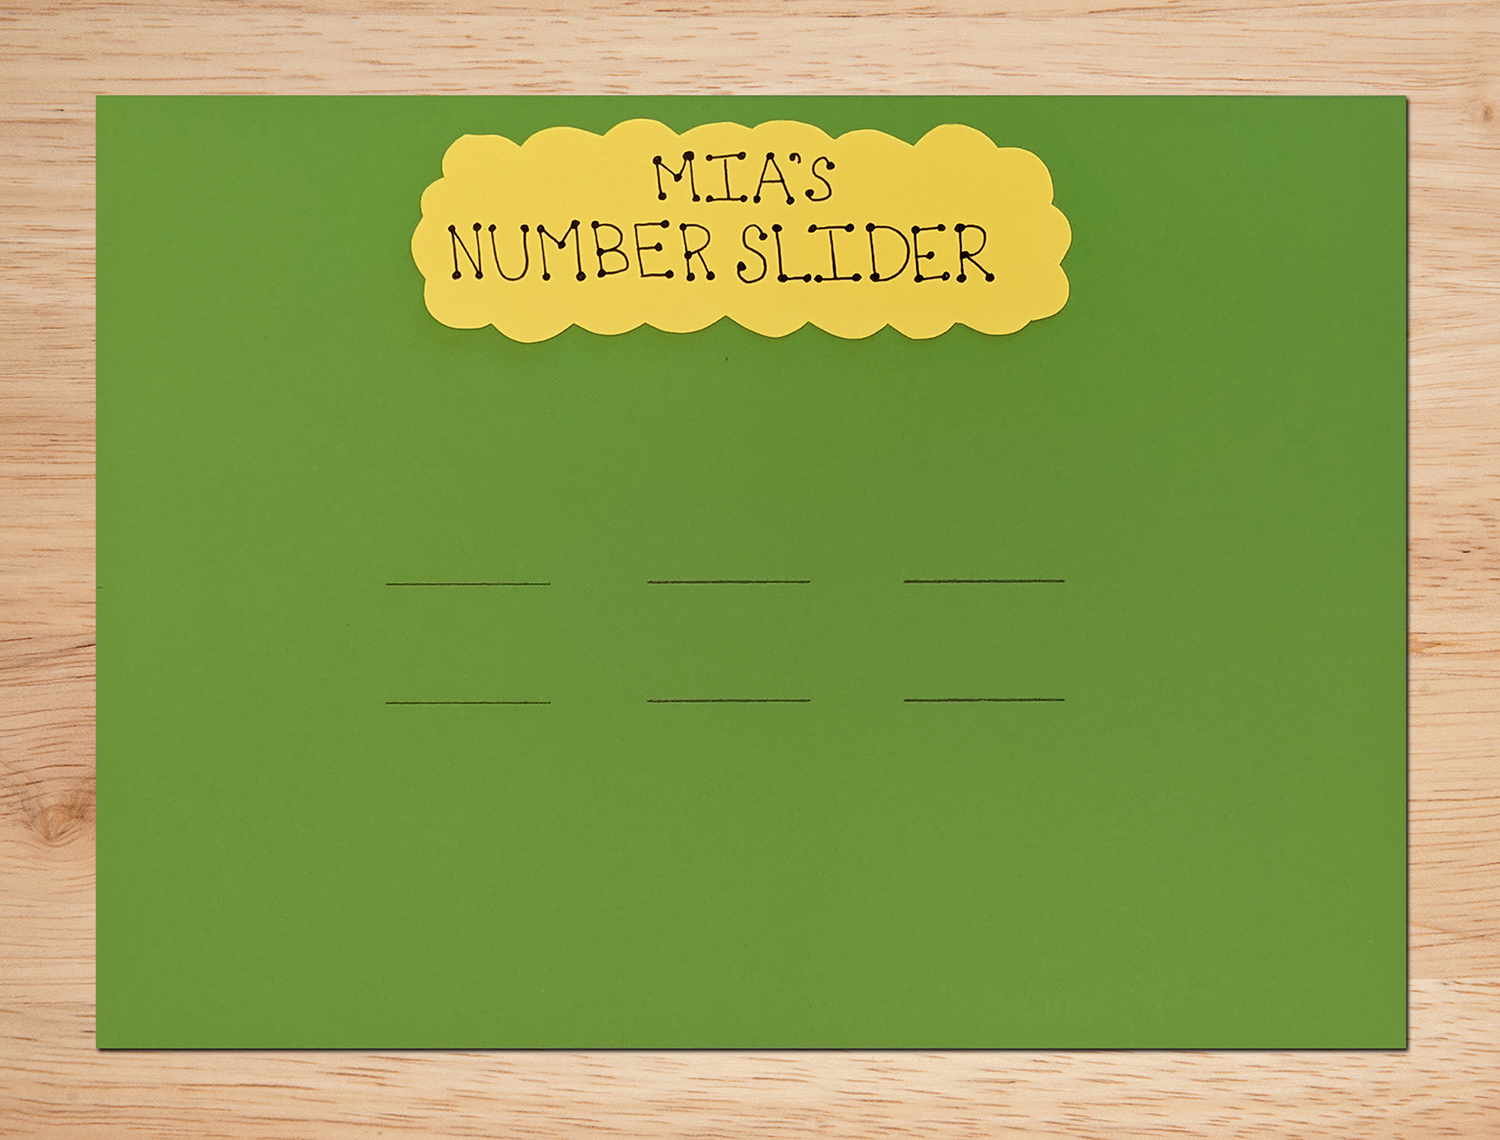 Number Sliders Activity